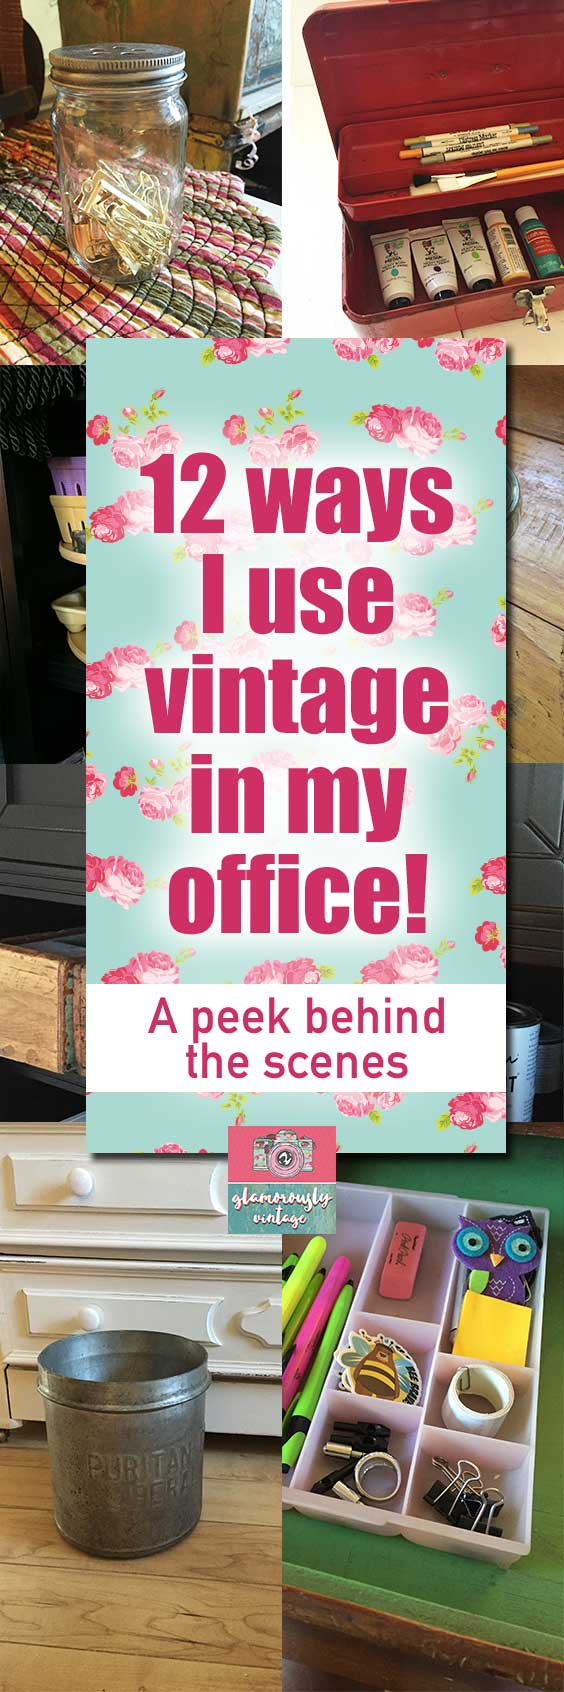 12 Ways I Use Vintage In My Office | Today I am going to be talking about how I use vintage items in my home office! Now, I know this look is not for everyone, but I love being surrounded by old items that are well made and functional too!